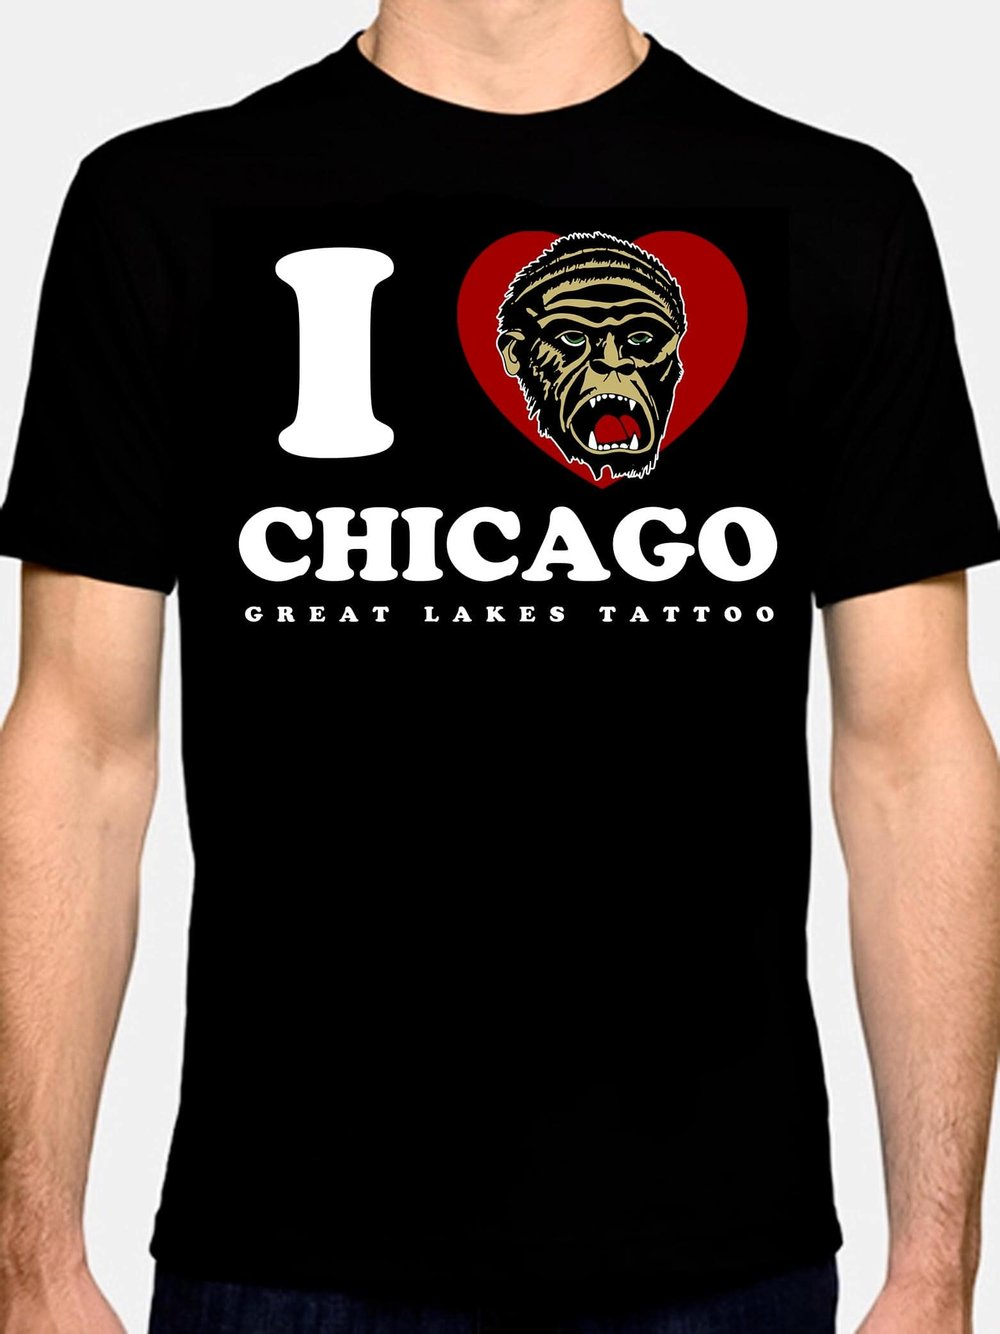 - NEW! GLT I heart Chicagorilla / Chicago shirts COMING SOON! Six color front print on black NextLevel premium tee. Pre-order available now in our web-store.